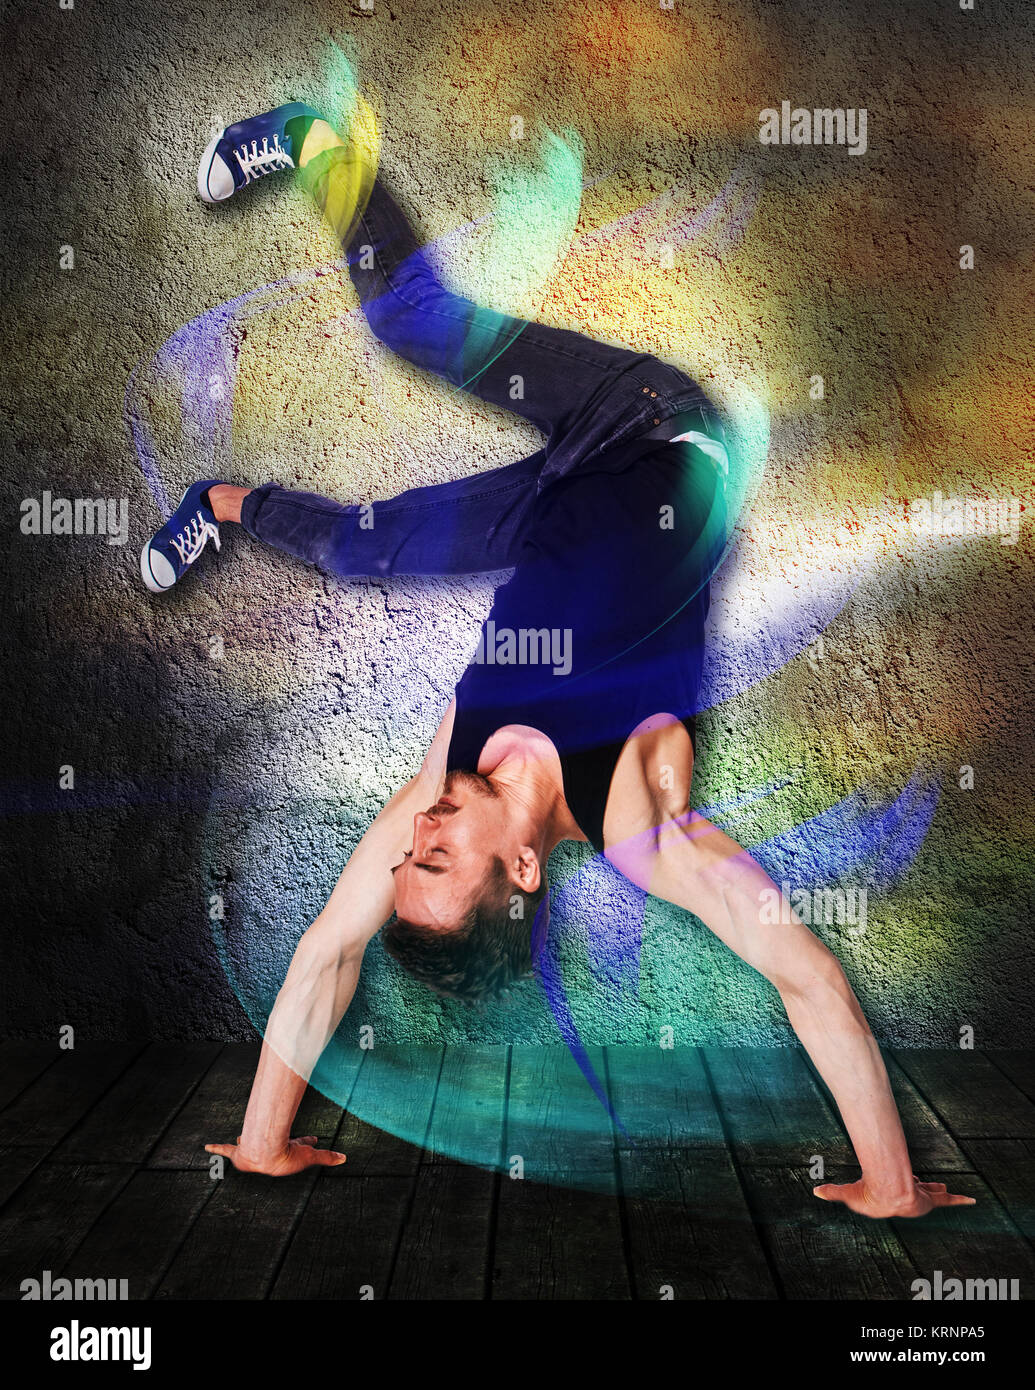 Break dancer doing handstand against colorful wall background - Stock Photo